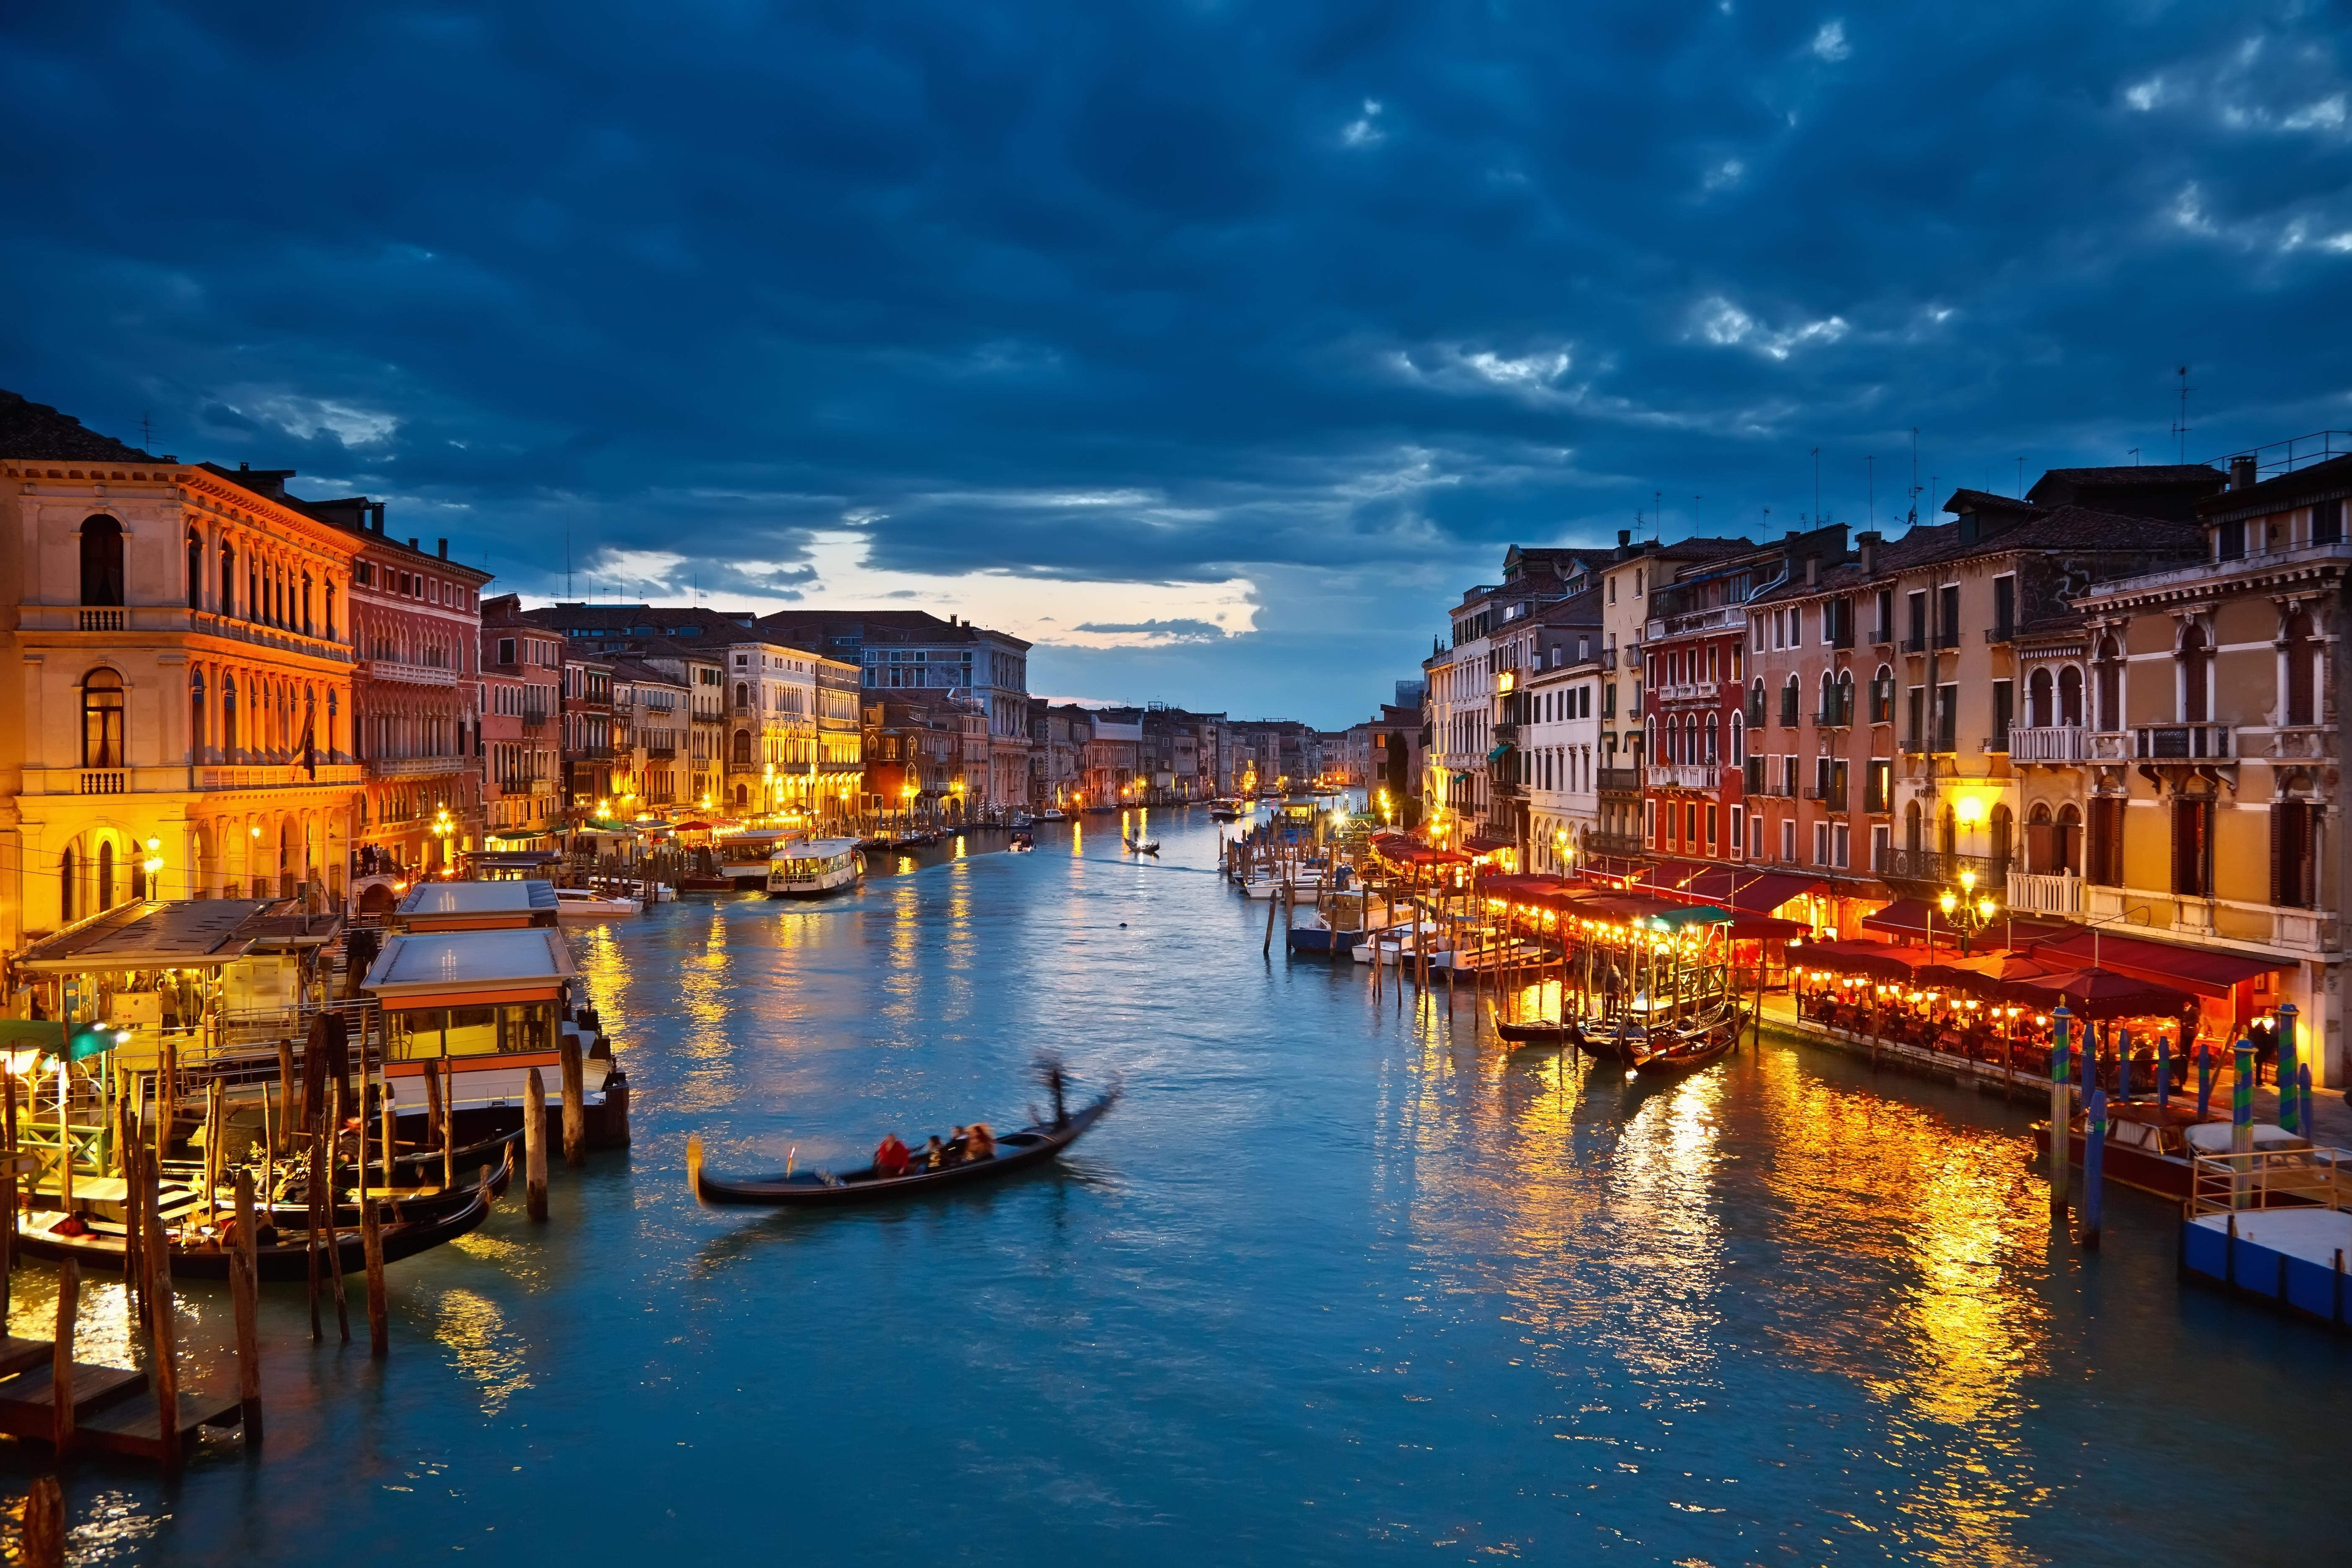 planetwildlife_grand canal venice italy